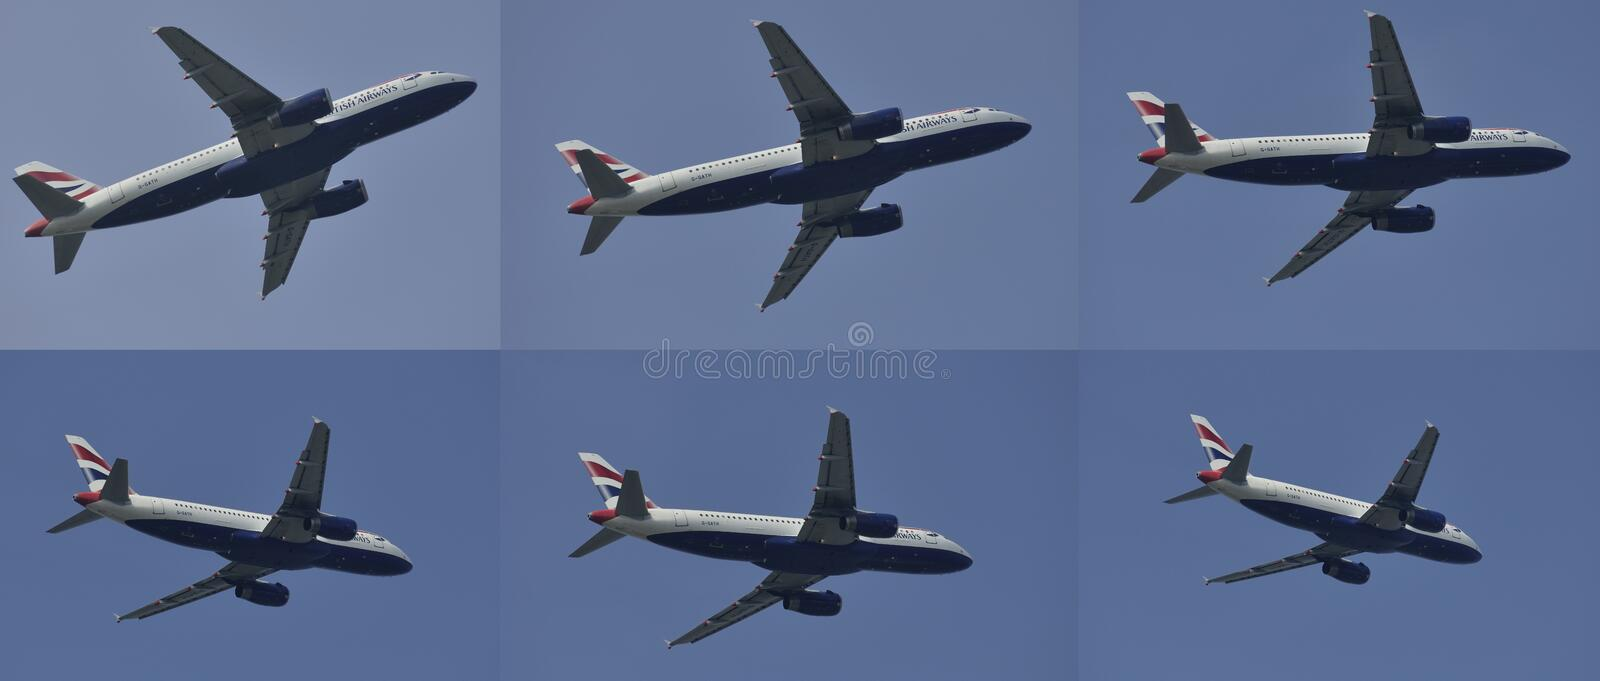 Twin engine superjet high-bypass turbofan airplane flying in different positions stock photography